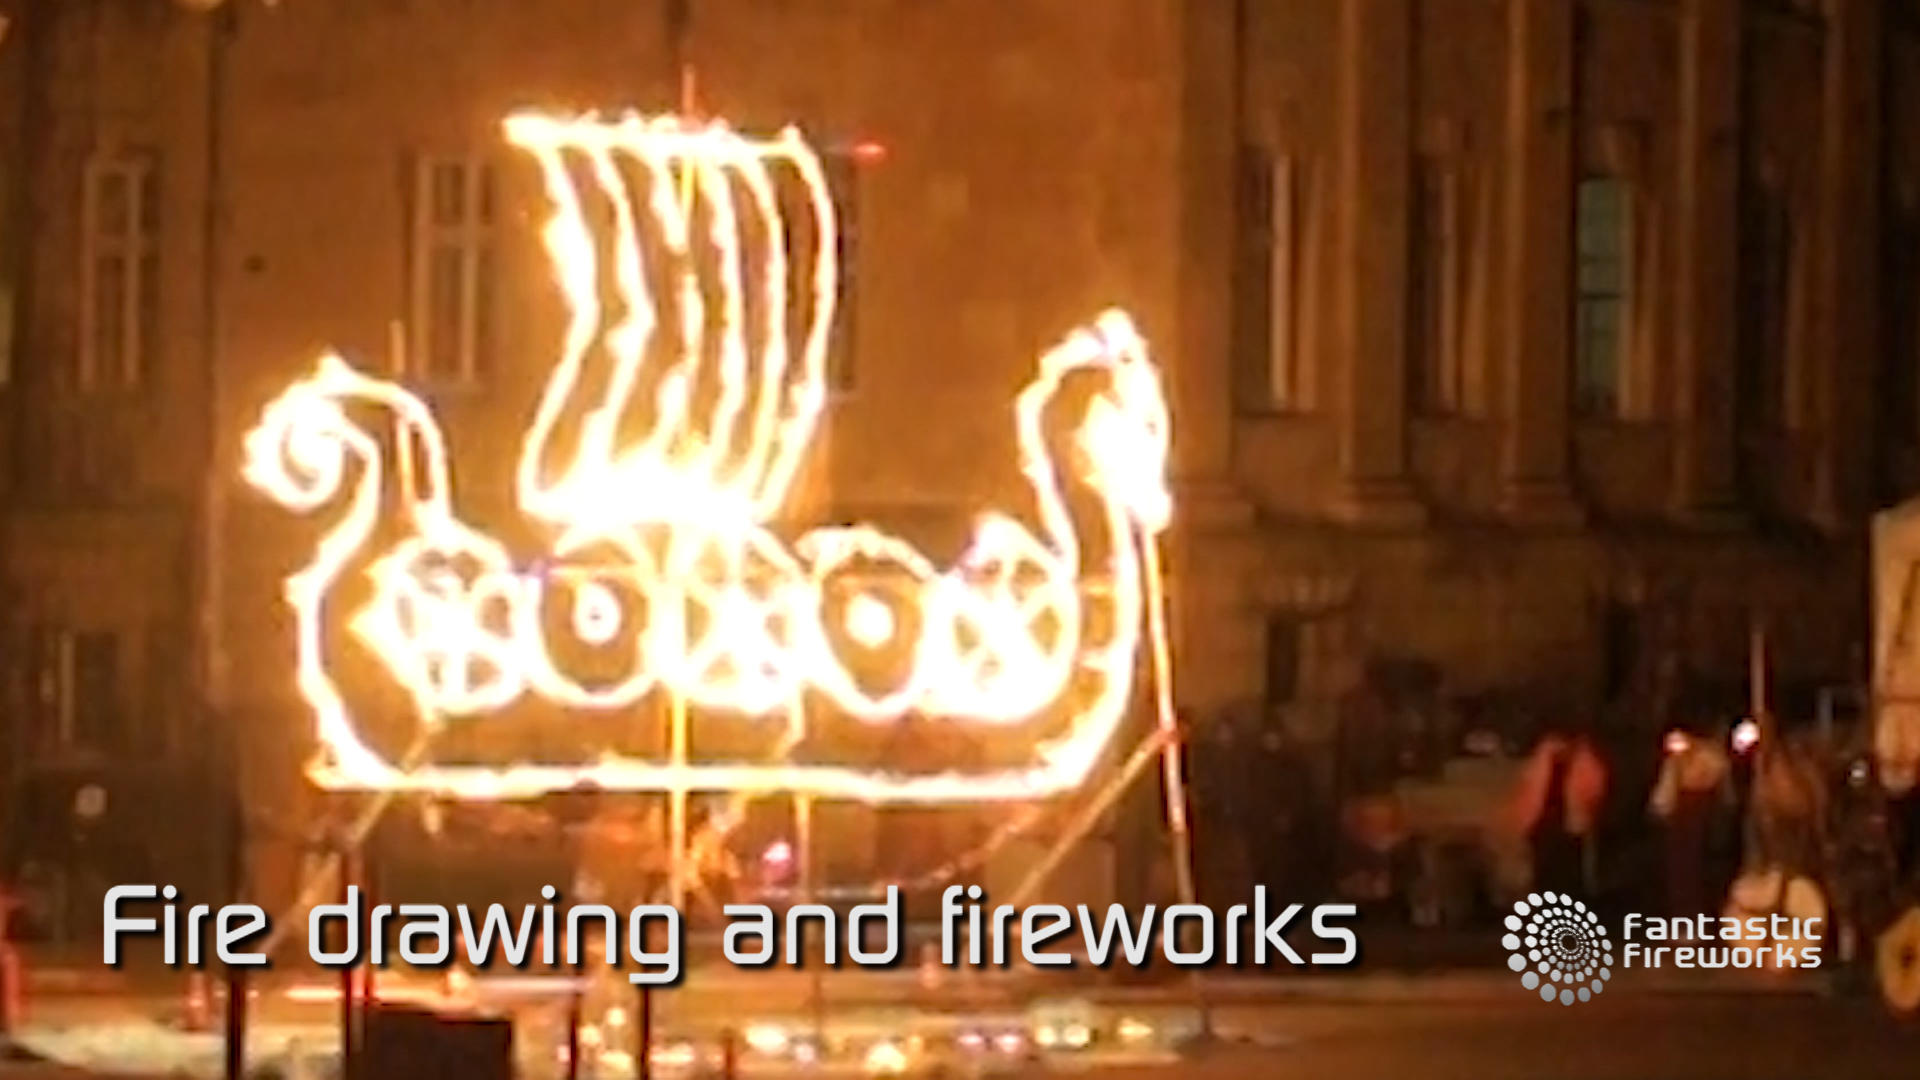 Professional Fireworks Displays | Fire Drawing